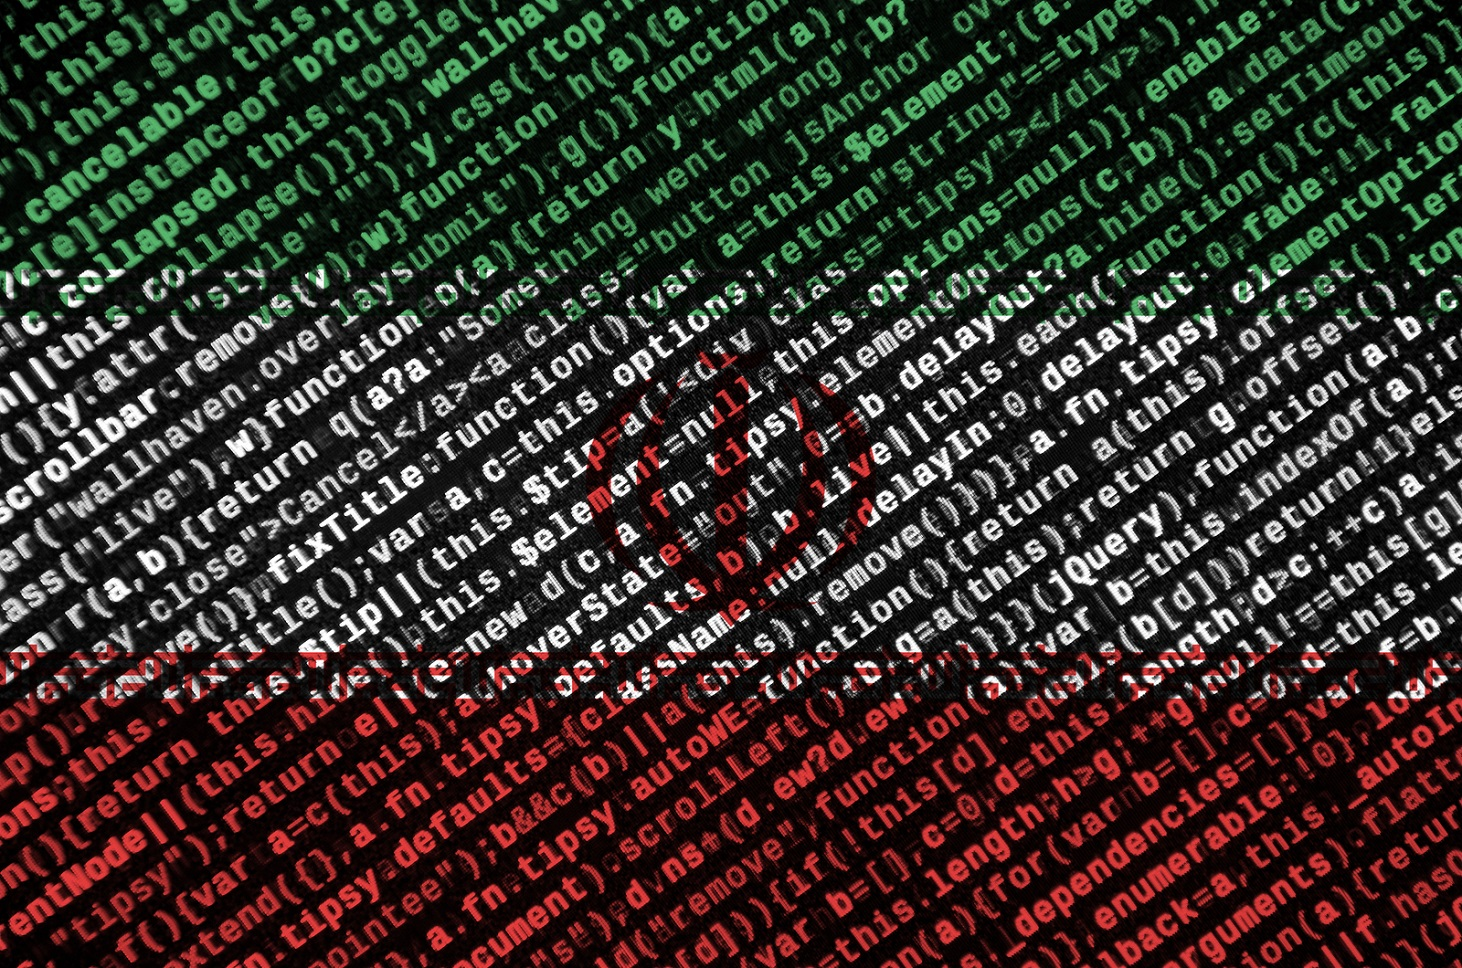 Iran flag is depicted on the screen with the program code.